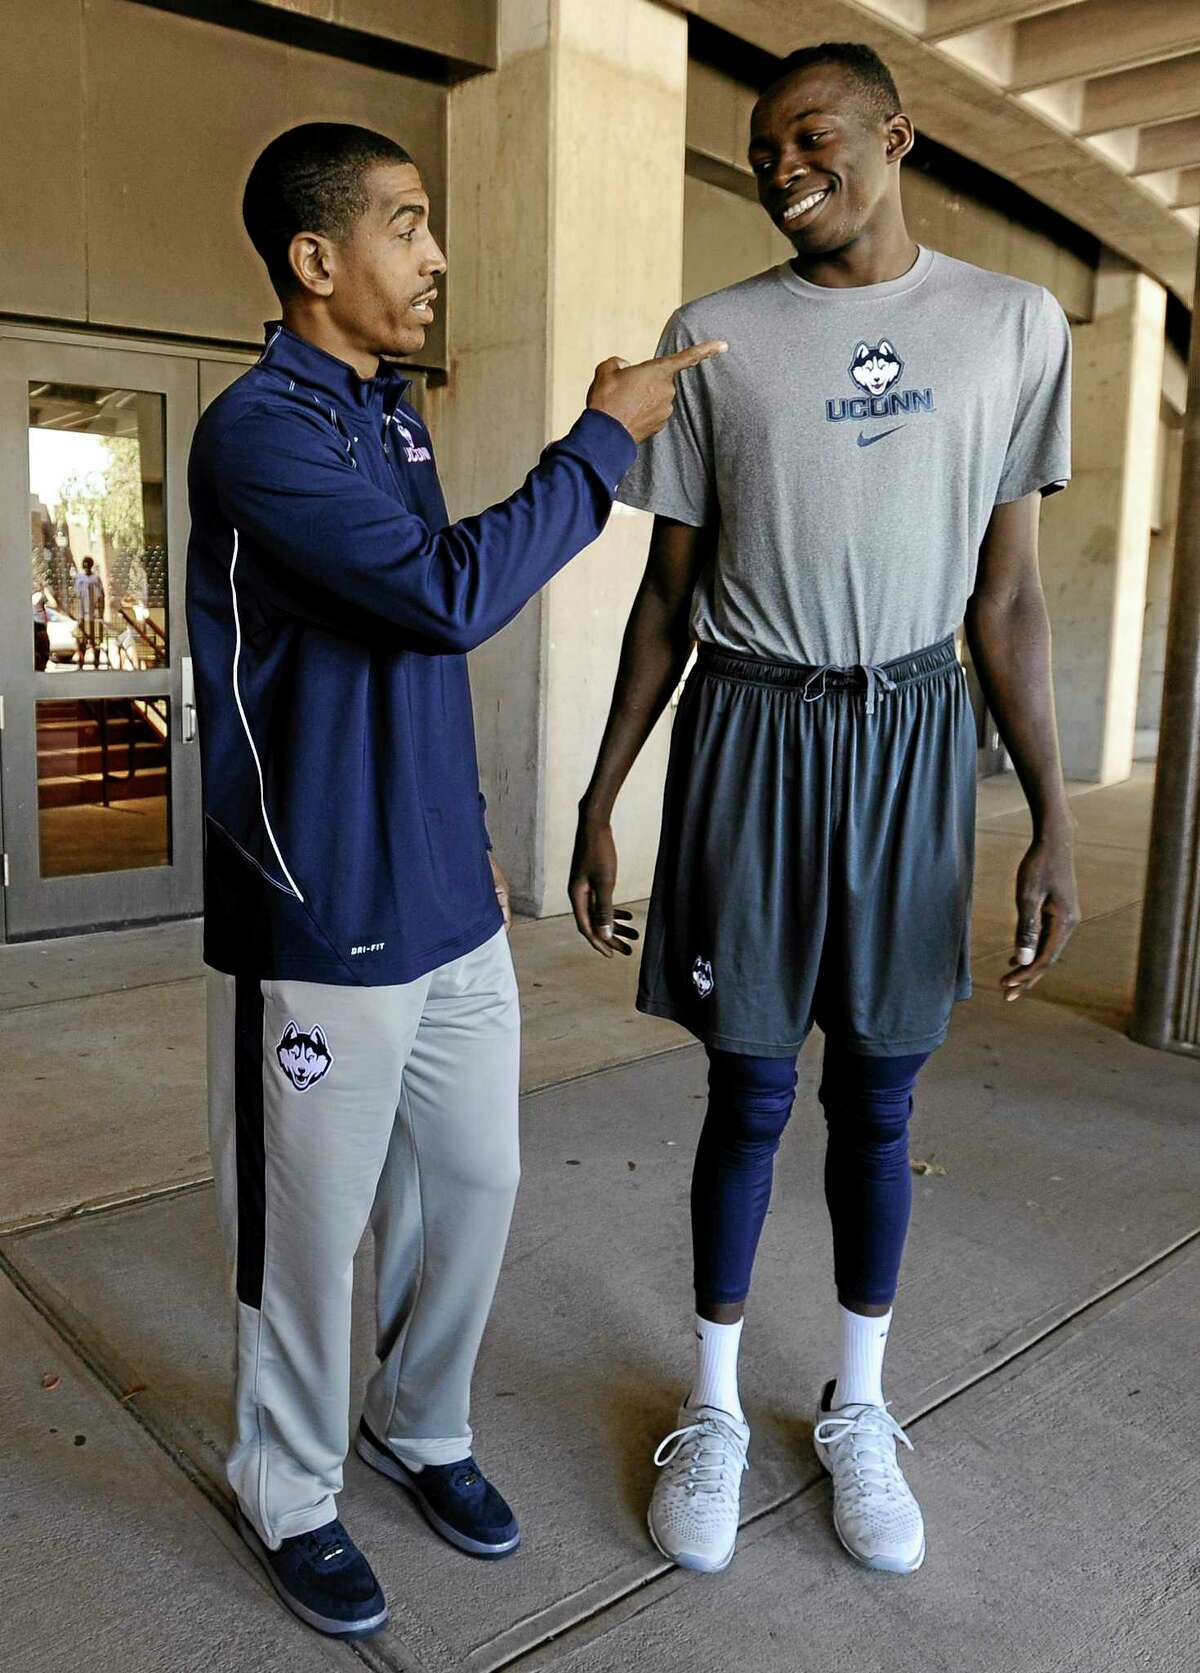 UConn head coach Kevin Ollie, left, talks with Amida Brimah prior to the annual Husky Run on Wednesday in Storrs. Ollie's son, Jalen, is a senior quarterback and Glastonbury and is demonstrating the same leadership abilities his father is famous for.